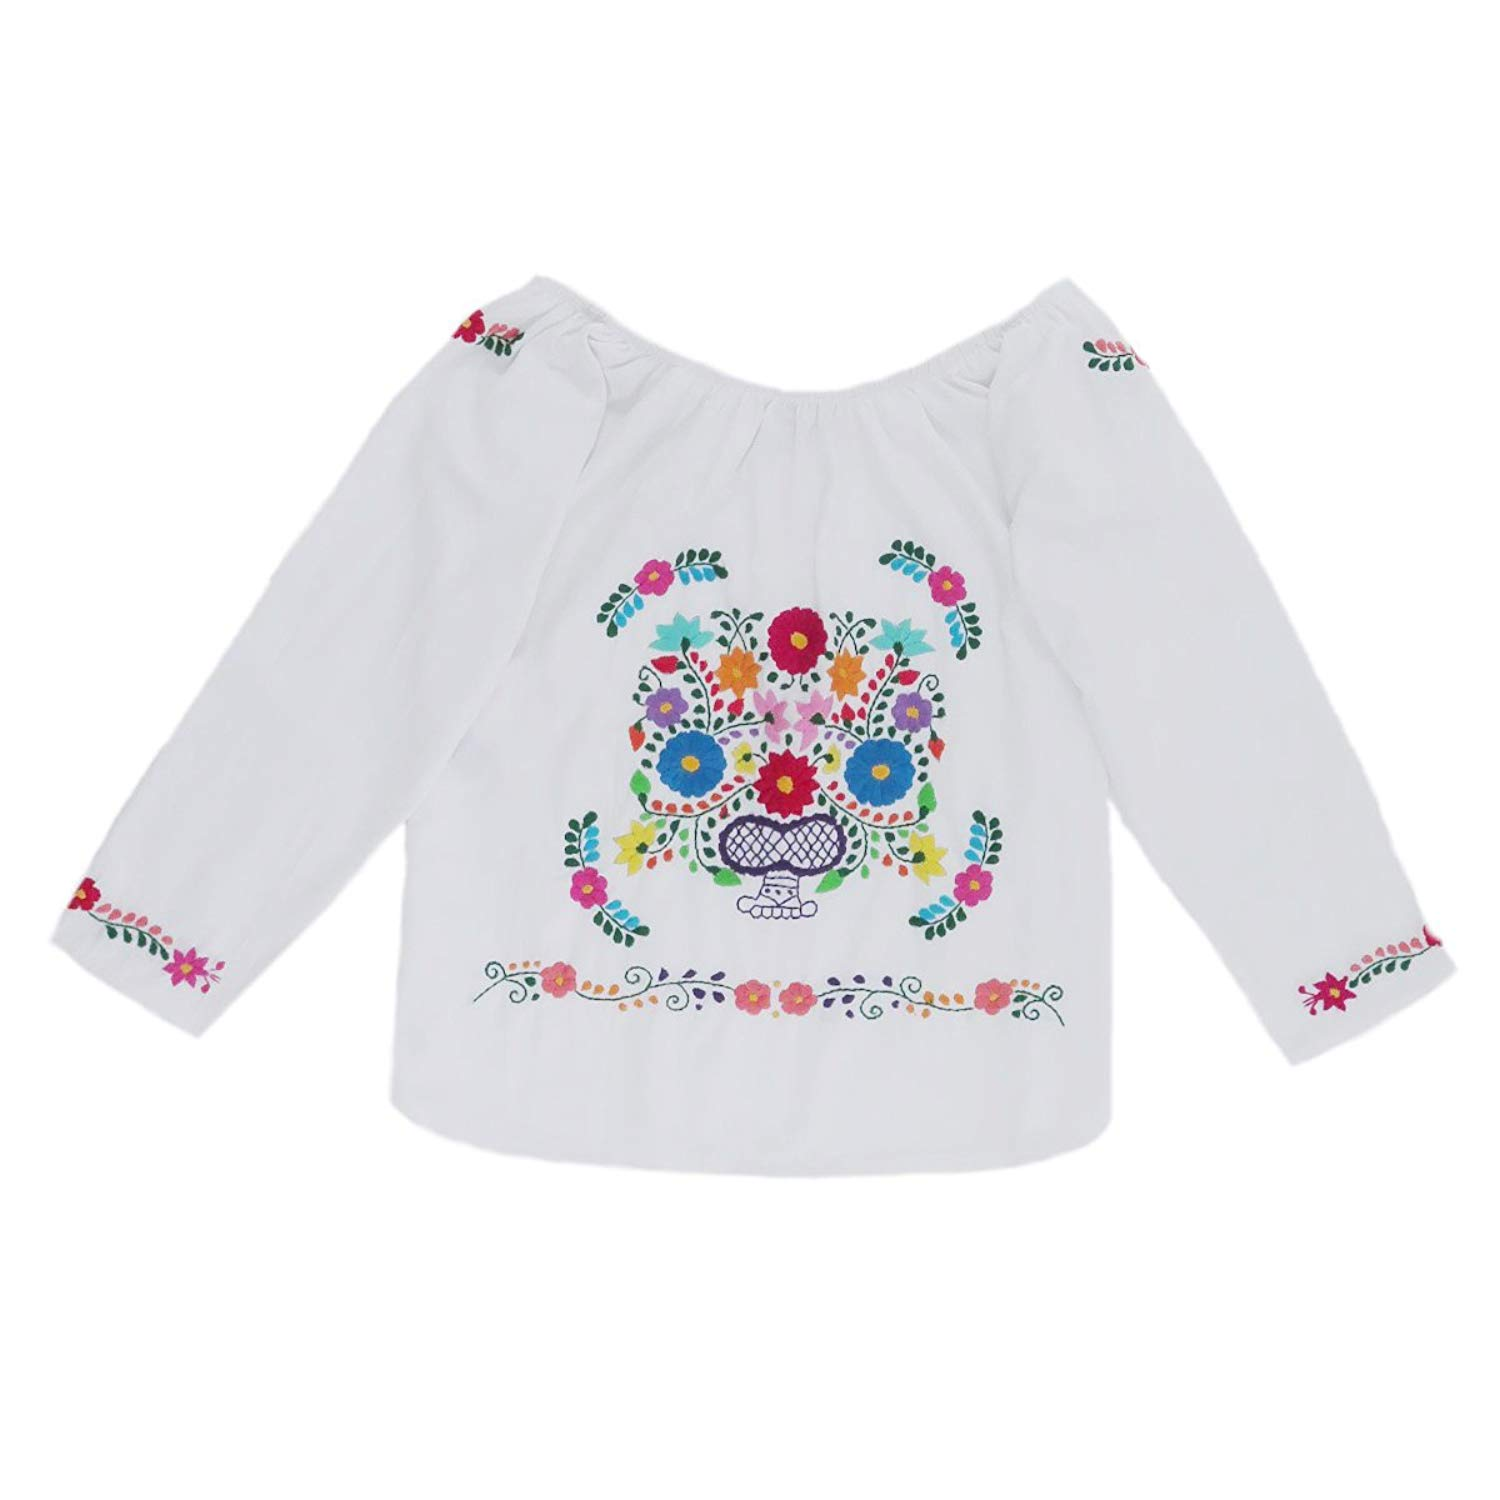 eaec7633e9b3d Get Quotations · Mexican Clothing Co Womens Mexican Blouse Elastic Shoulder  Tehuacan Manta CT